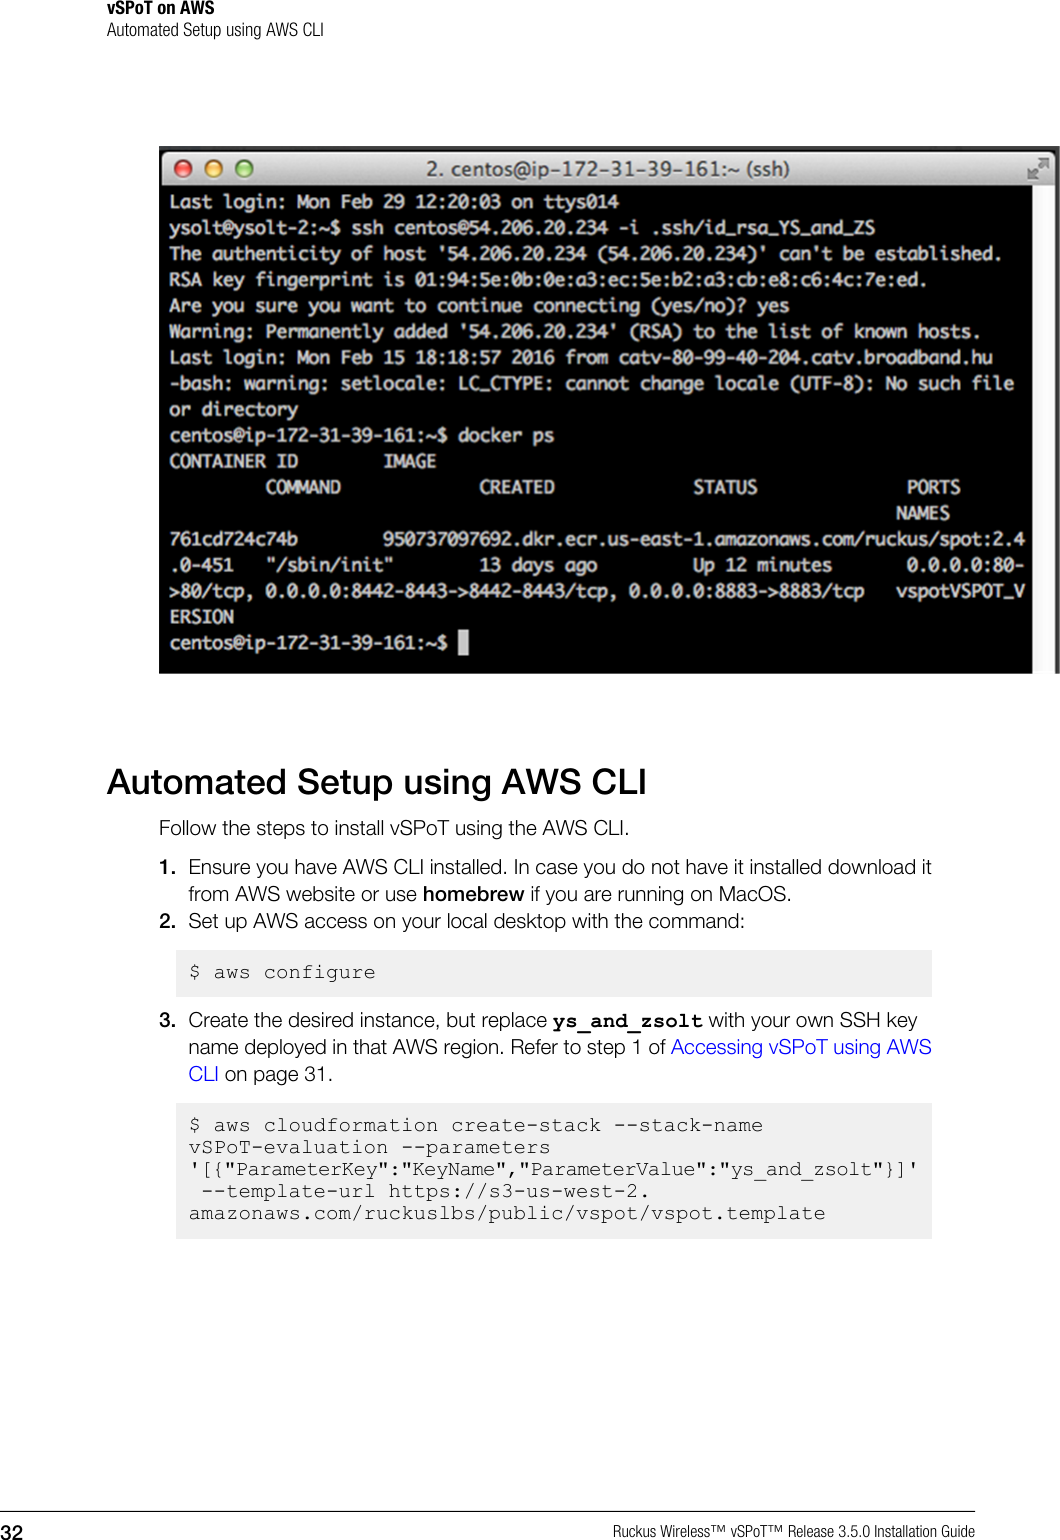 Running Cloudformation From Aws Cli